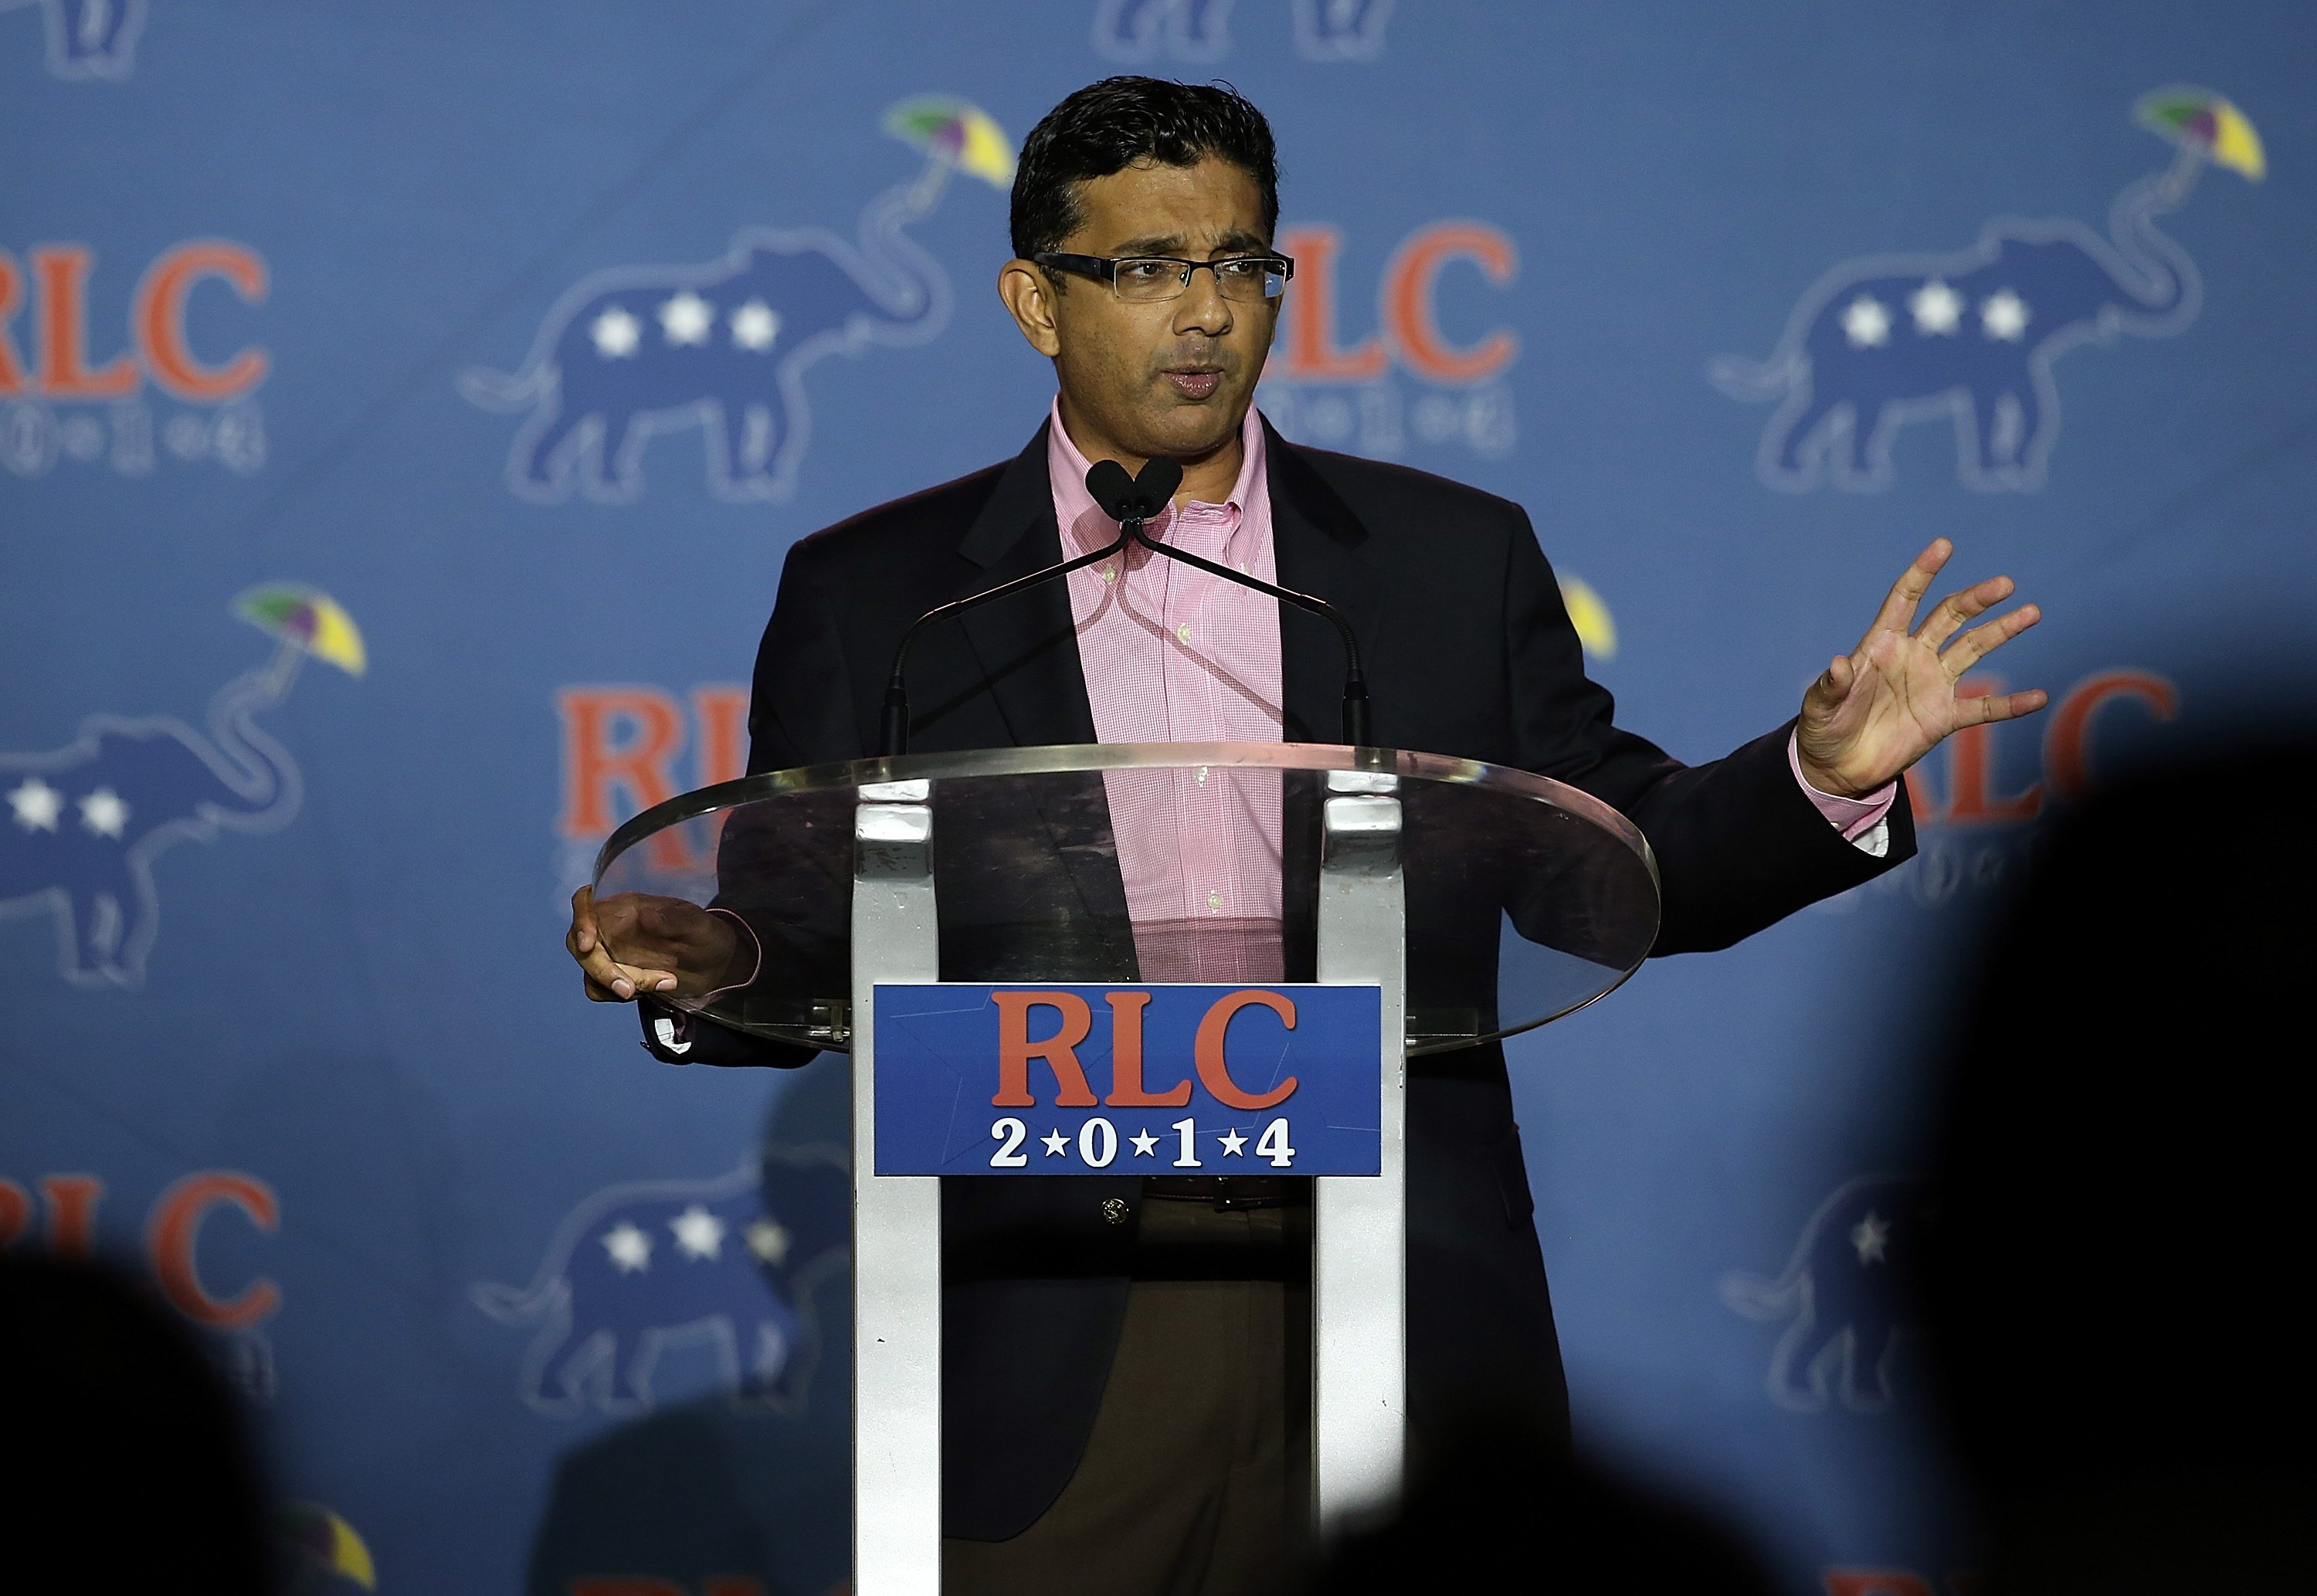 Conservative filmmaker and author Dinesh D'Souza speaks